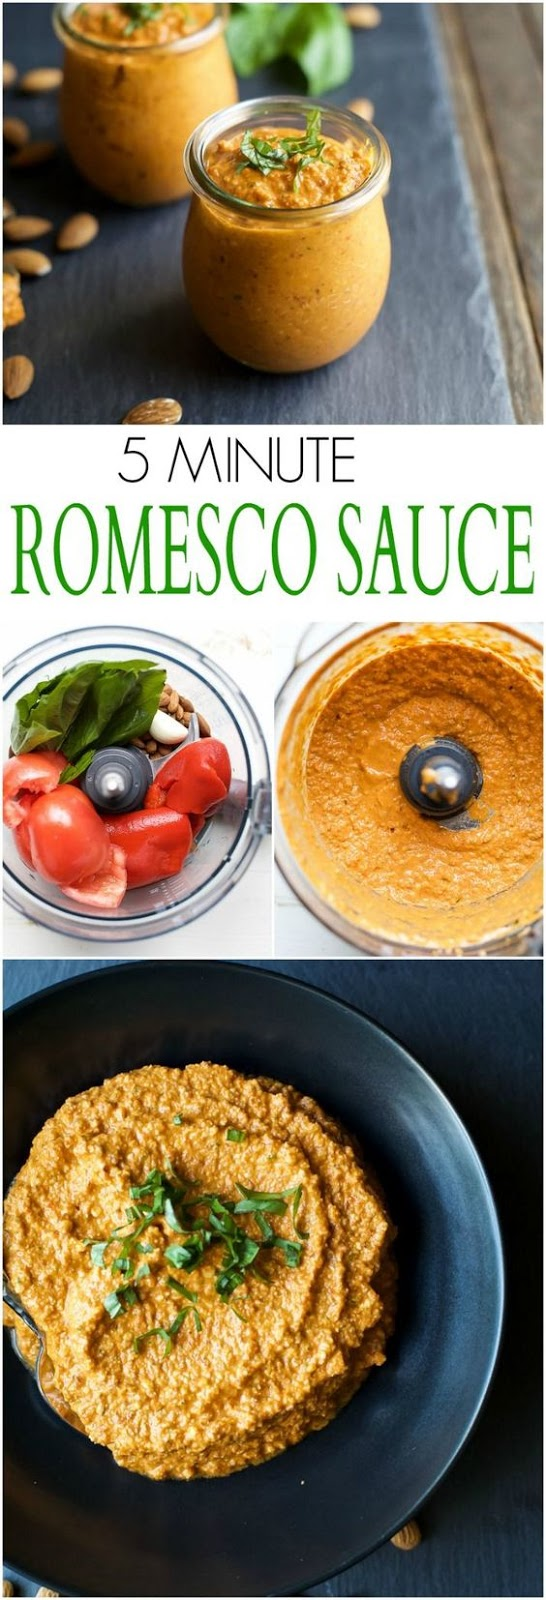 5 Minute Romesco Sauce